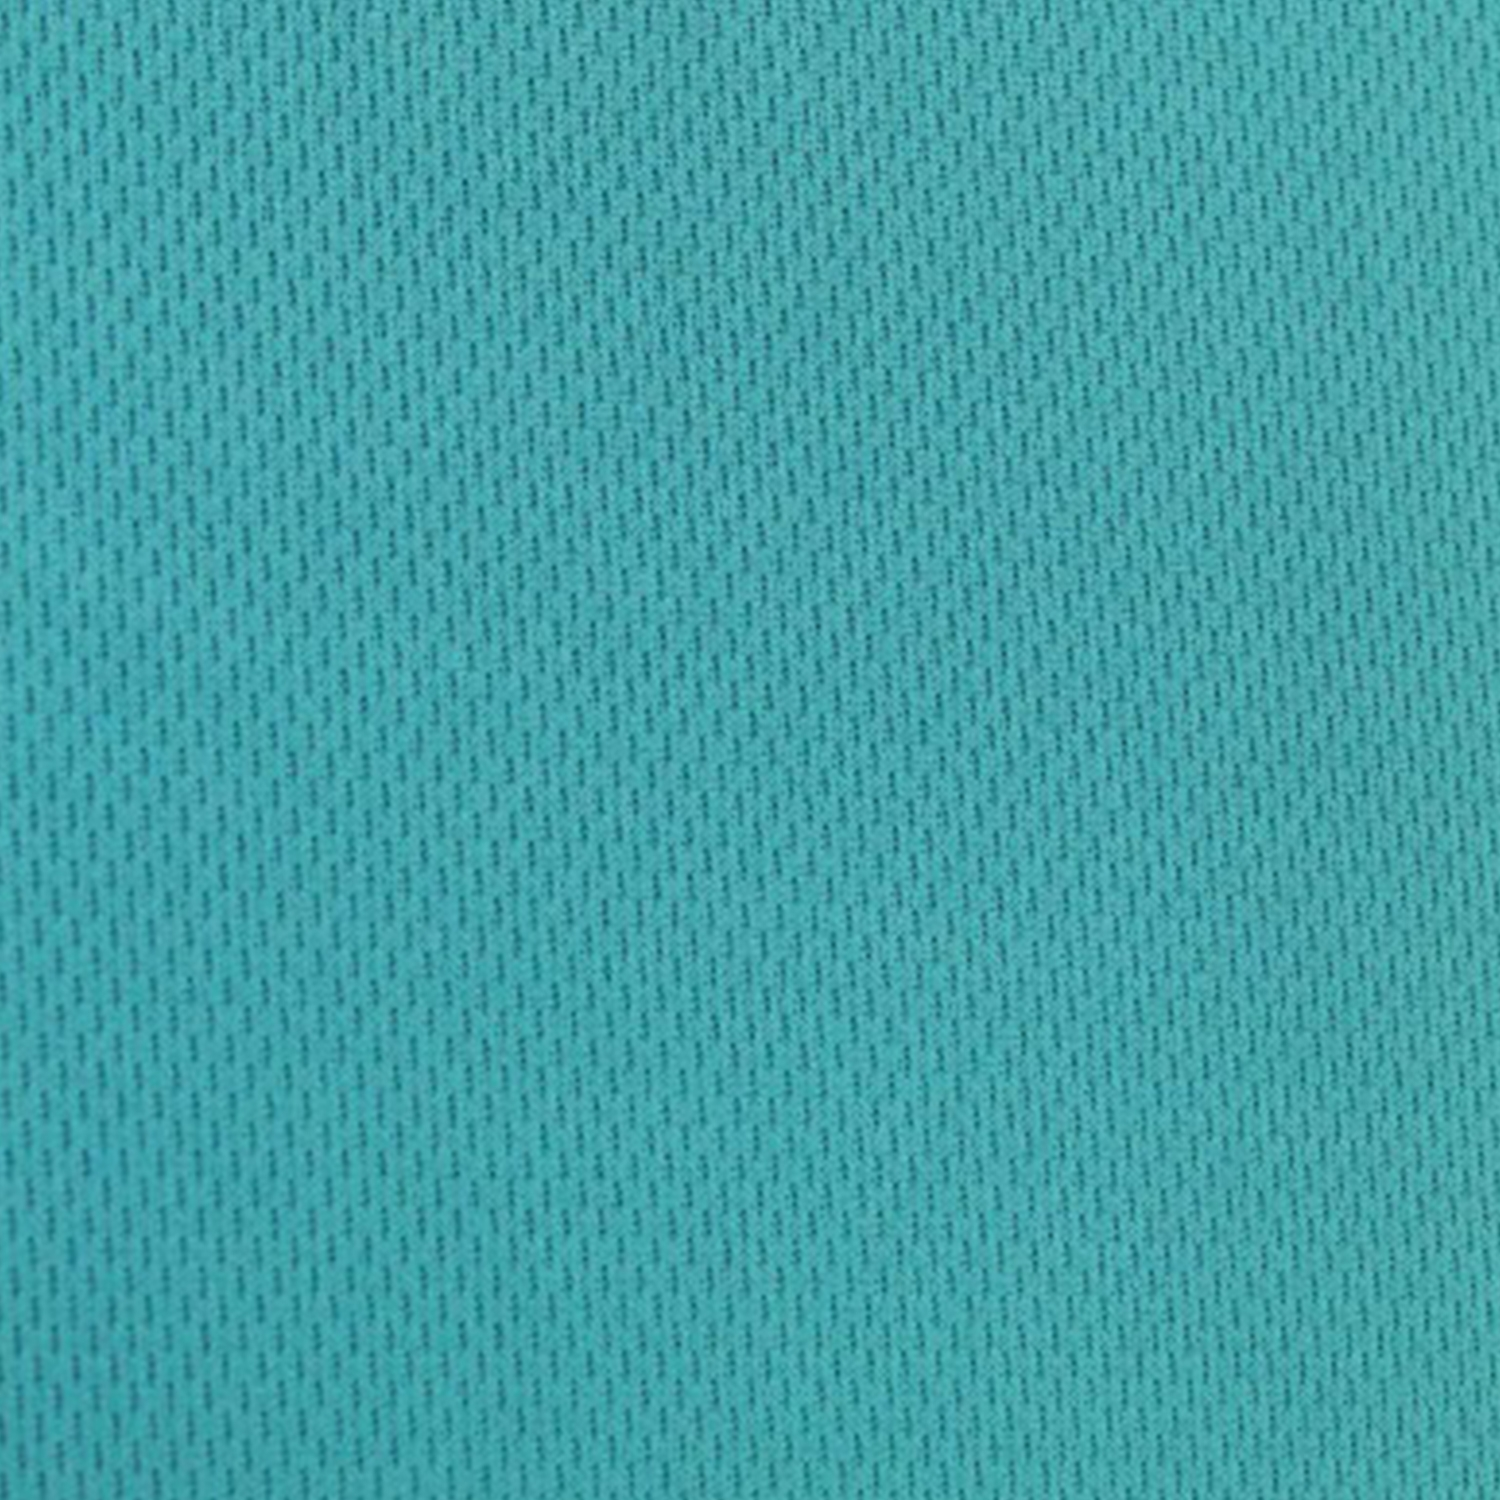 Teal Flat Back Dimple Mesh Fabric